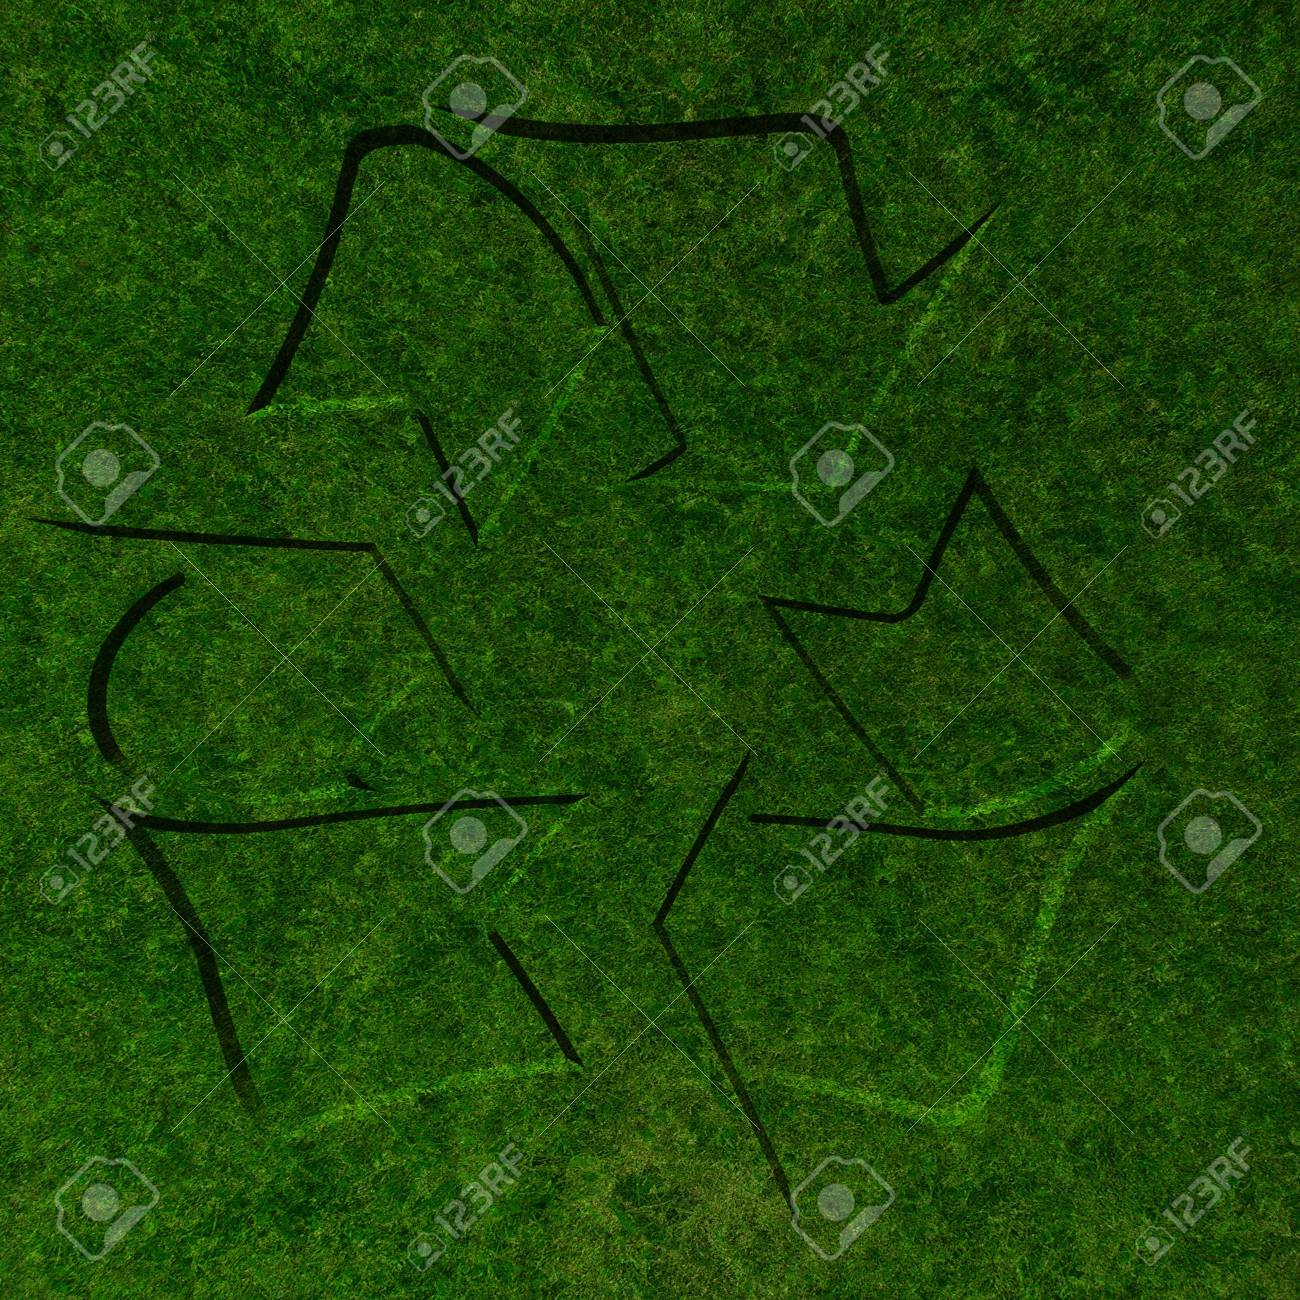 Grass Texture With The Recycle Symbol In It